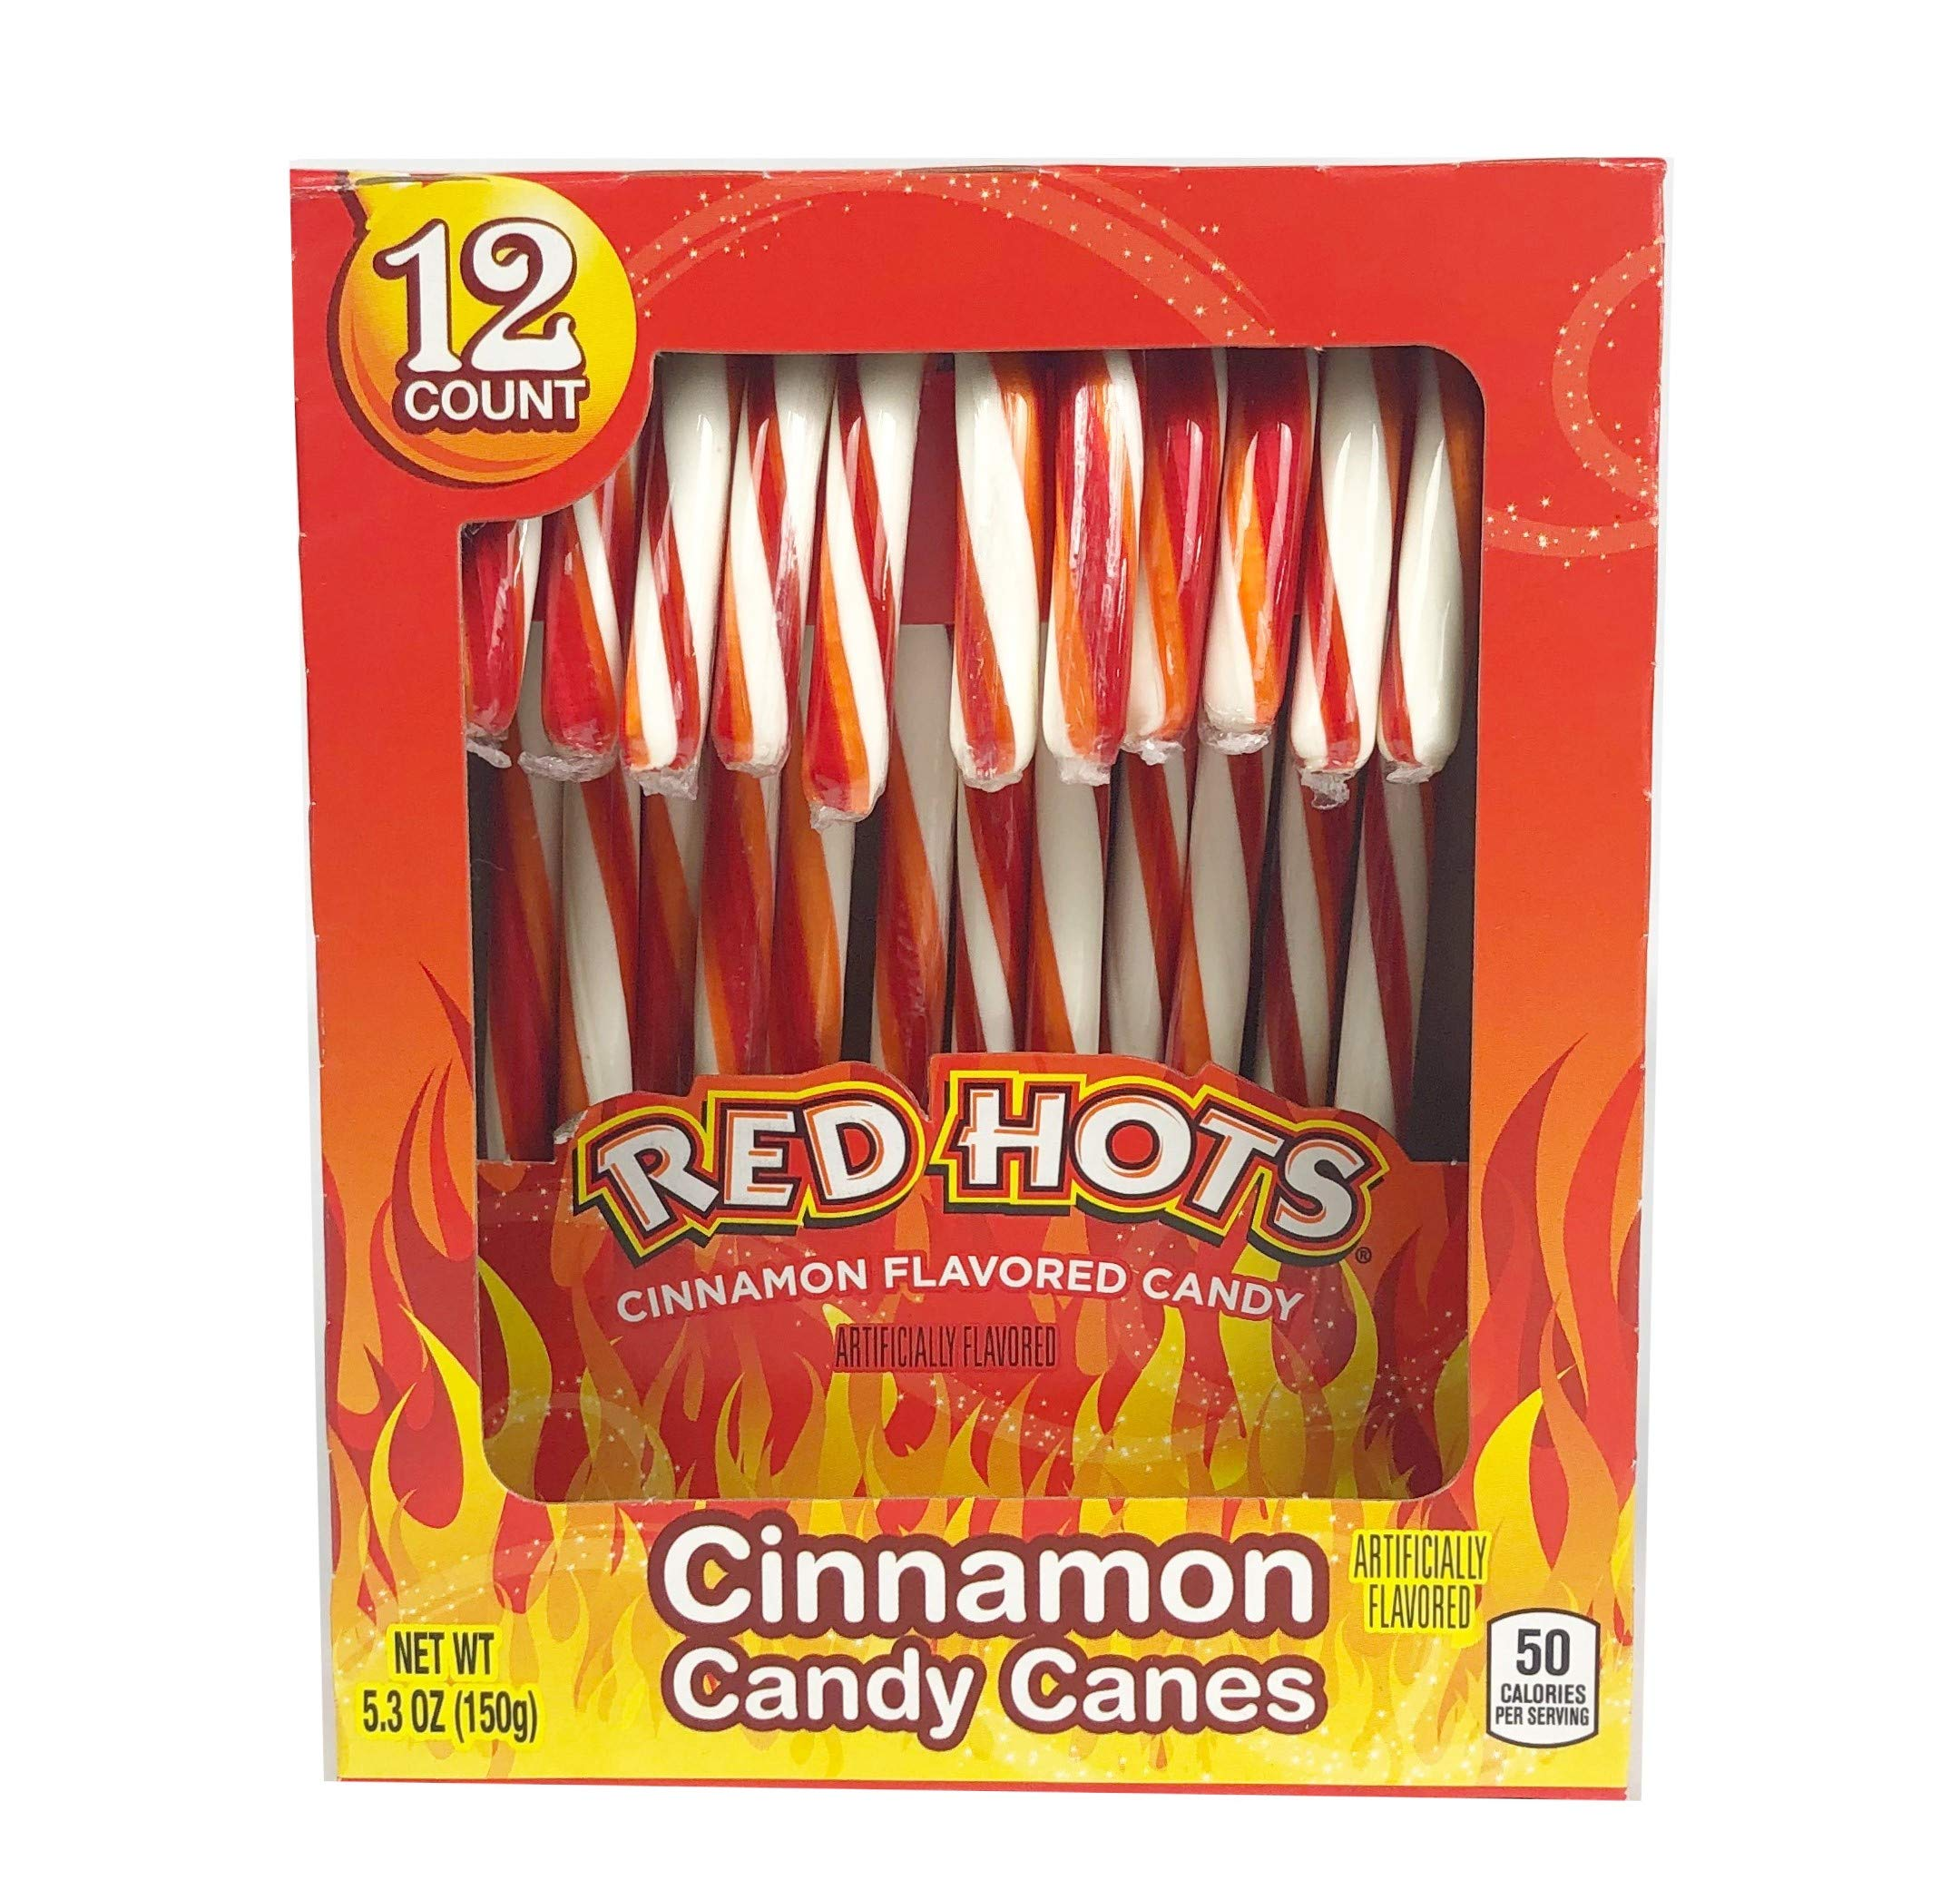 Brach's Red Hots Cinnamon Flavored Candy Canes, 12 Count, 6 Oz